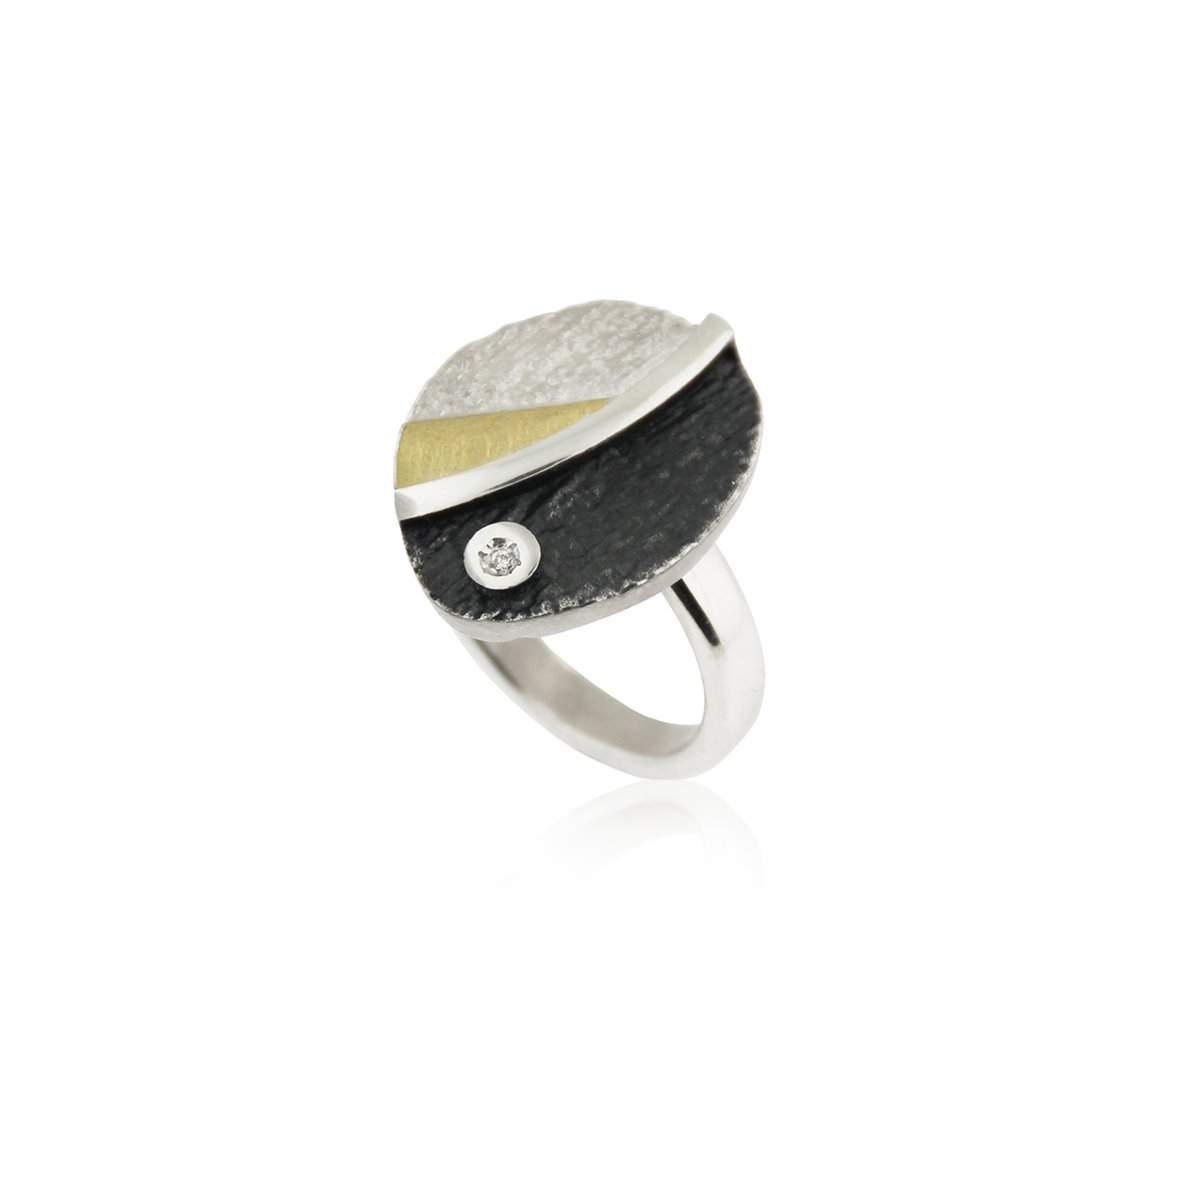 SILVER & GOLD RING WITH DIAMOND.  R1952